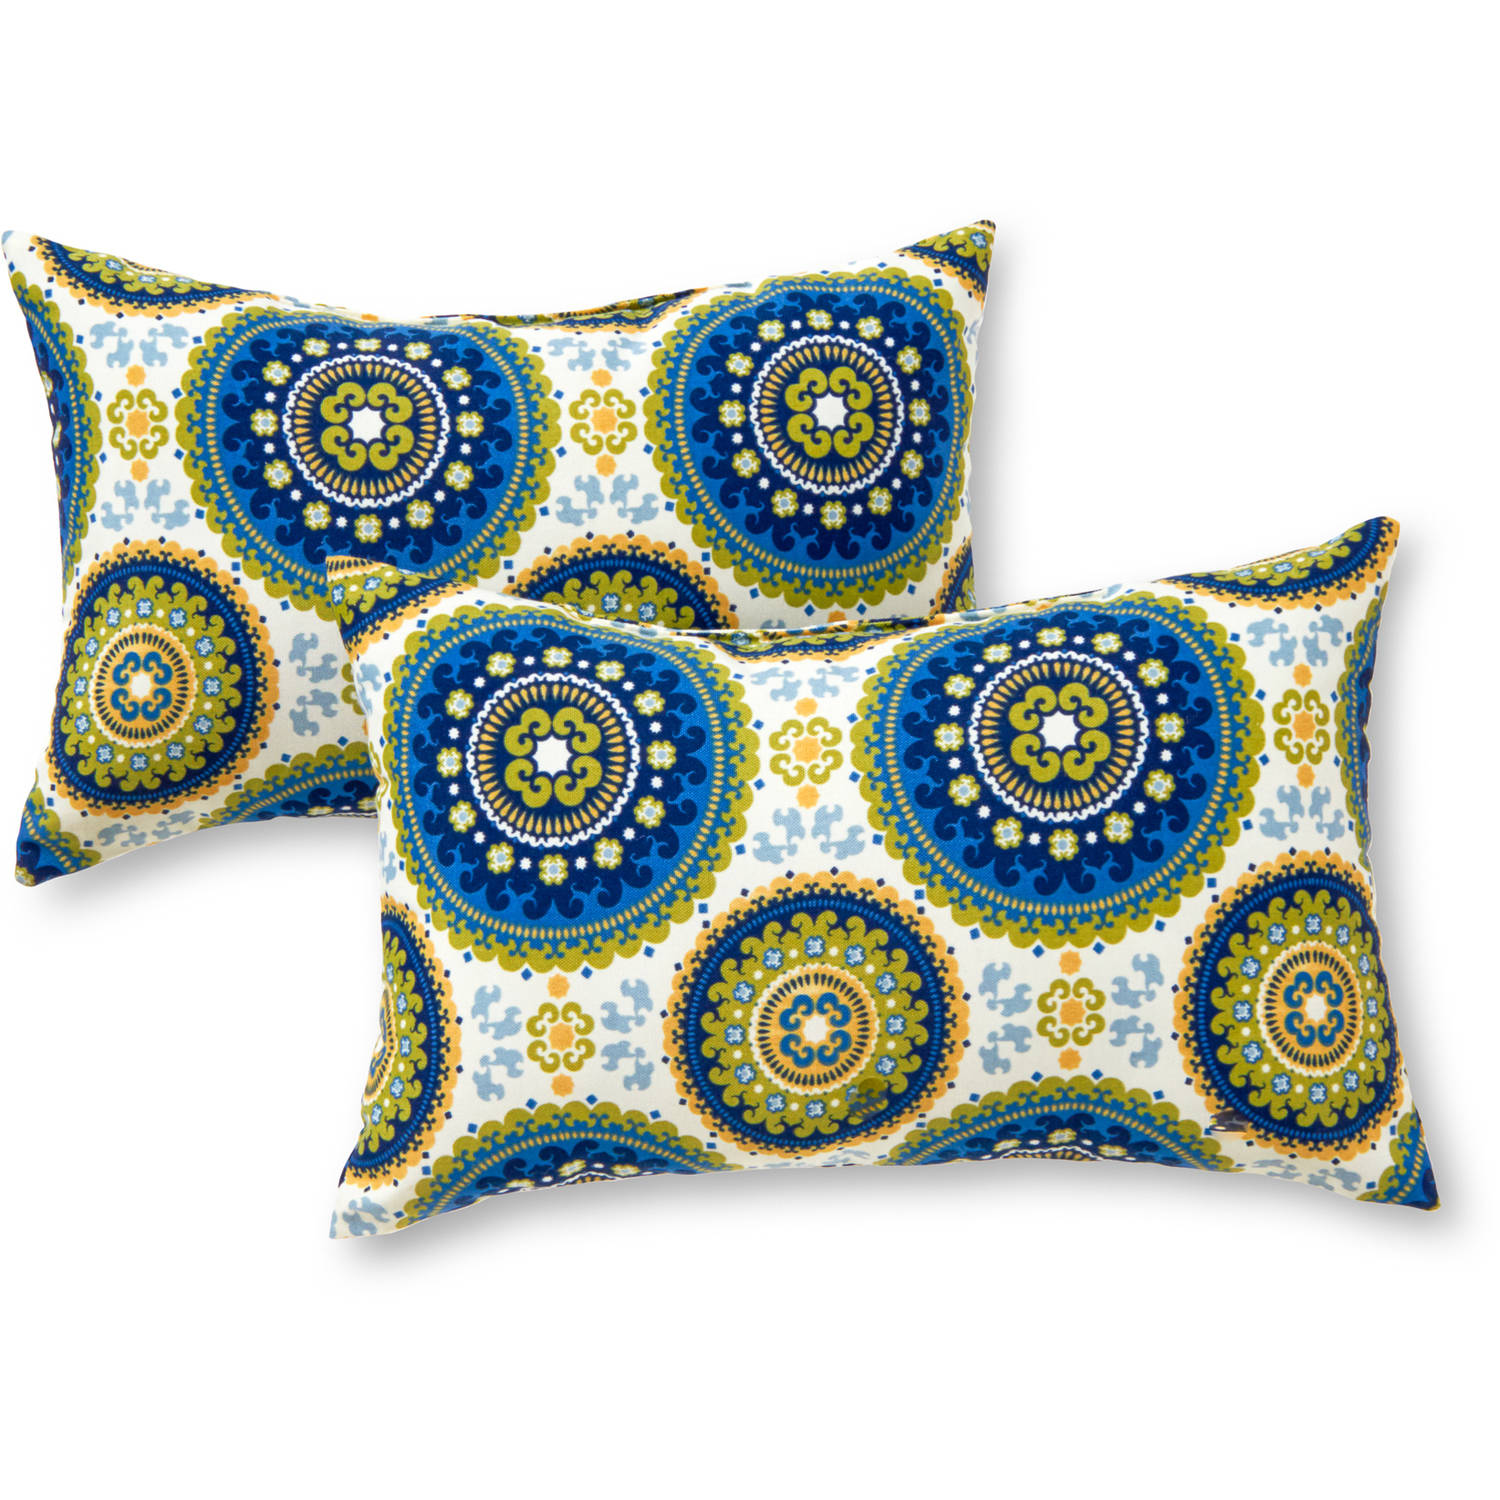 Greendale Home Fashions Rectangle Outdoor Accent Pillows, Set of 2, Summer